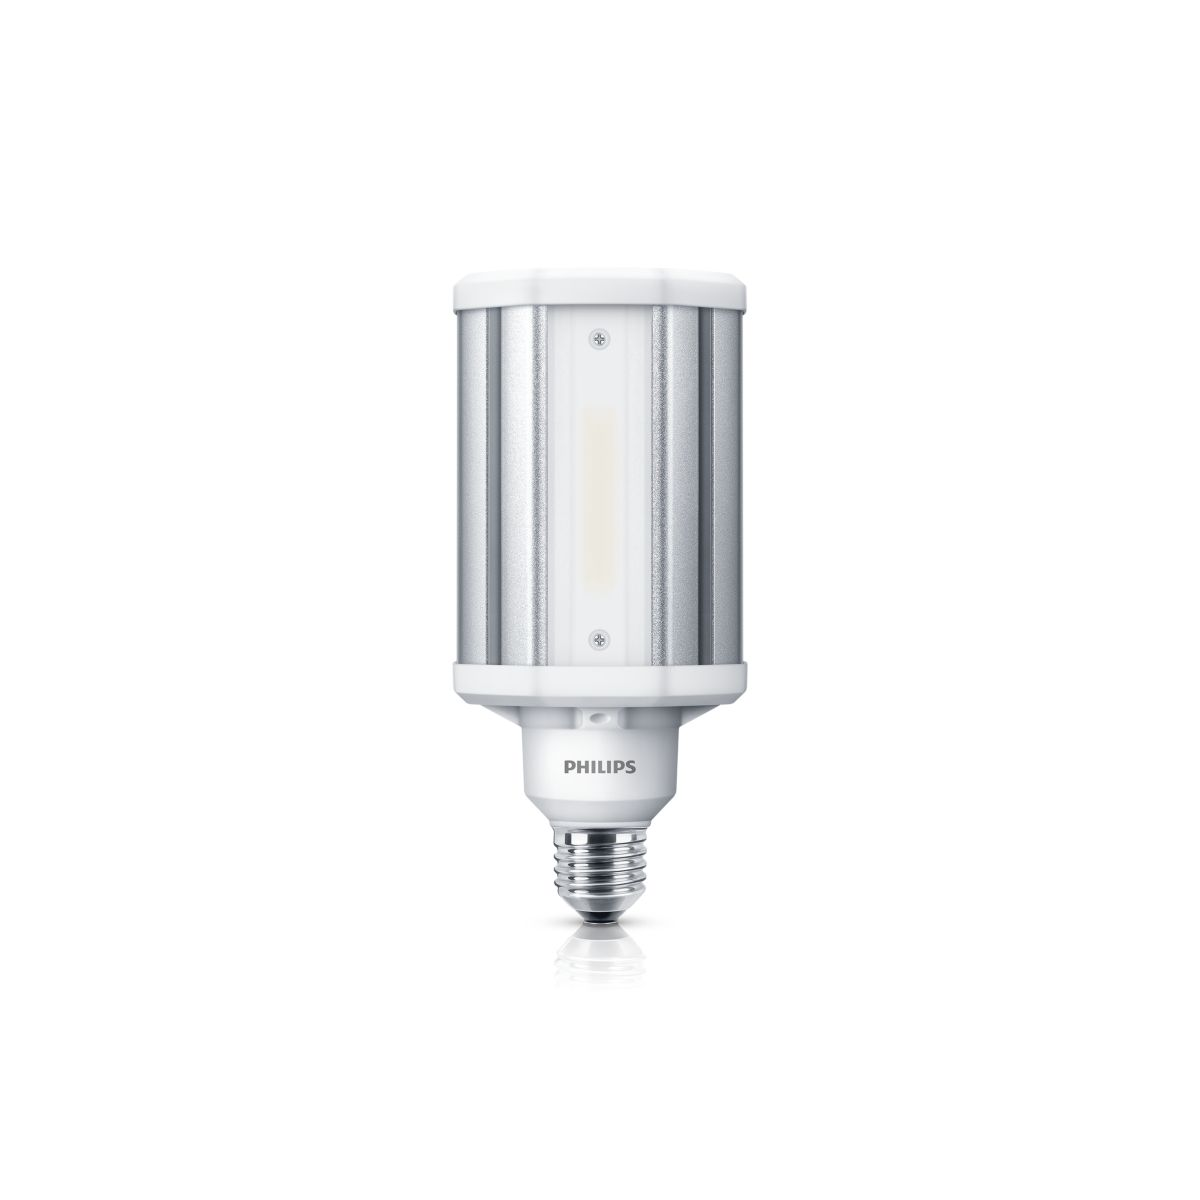 Masters Led Lighting Master Led Lampen Philips Philips Lighting